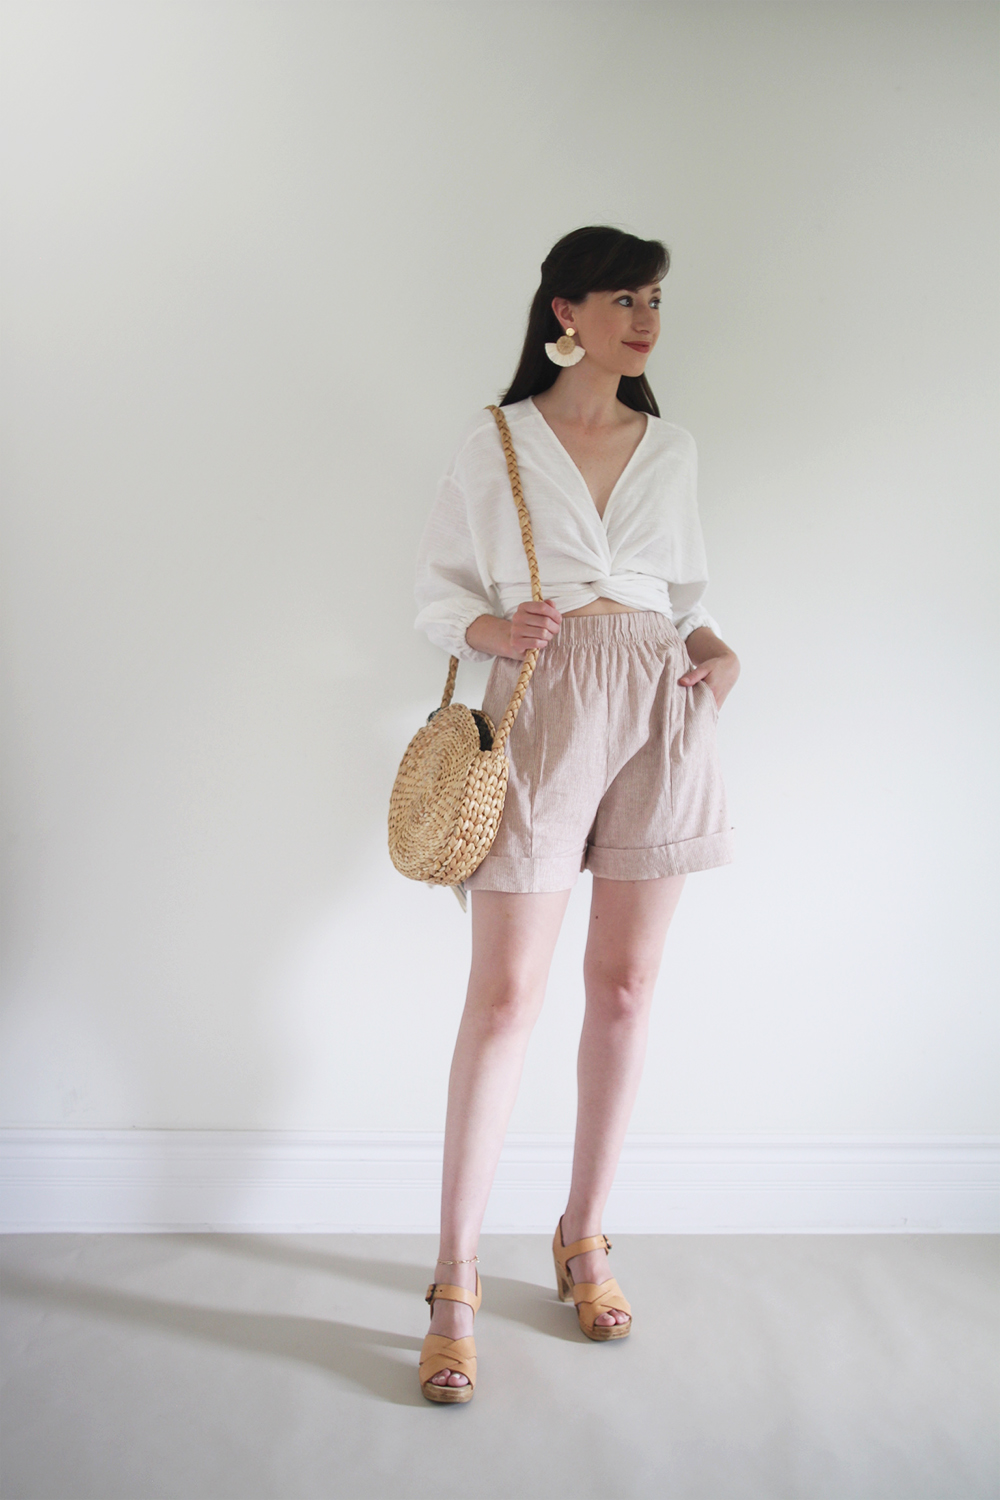 Style Bee - Summer Stripes - For Fun - Wrap Top + Striped Shorts + Clogs + Woven Bag